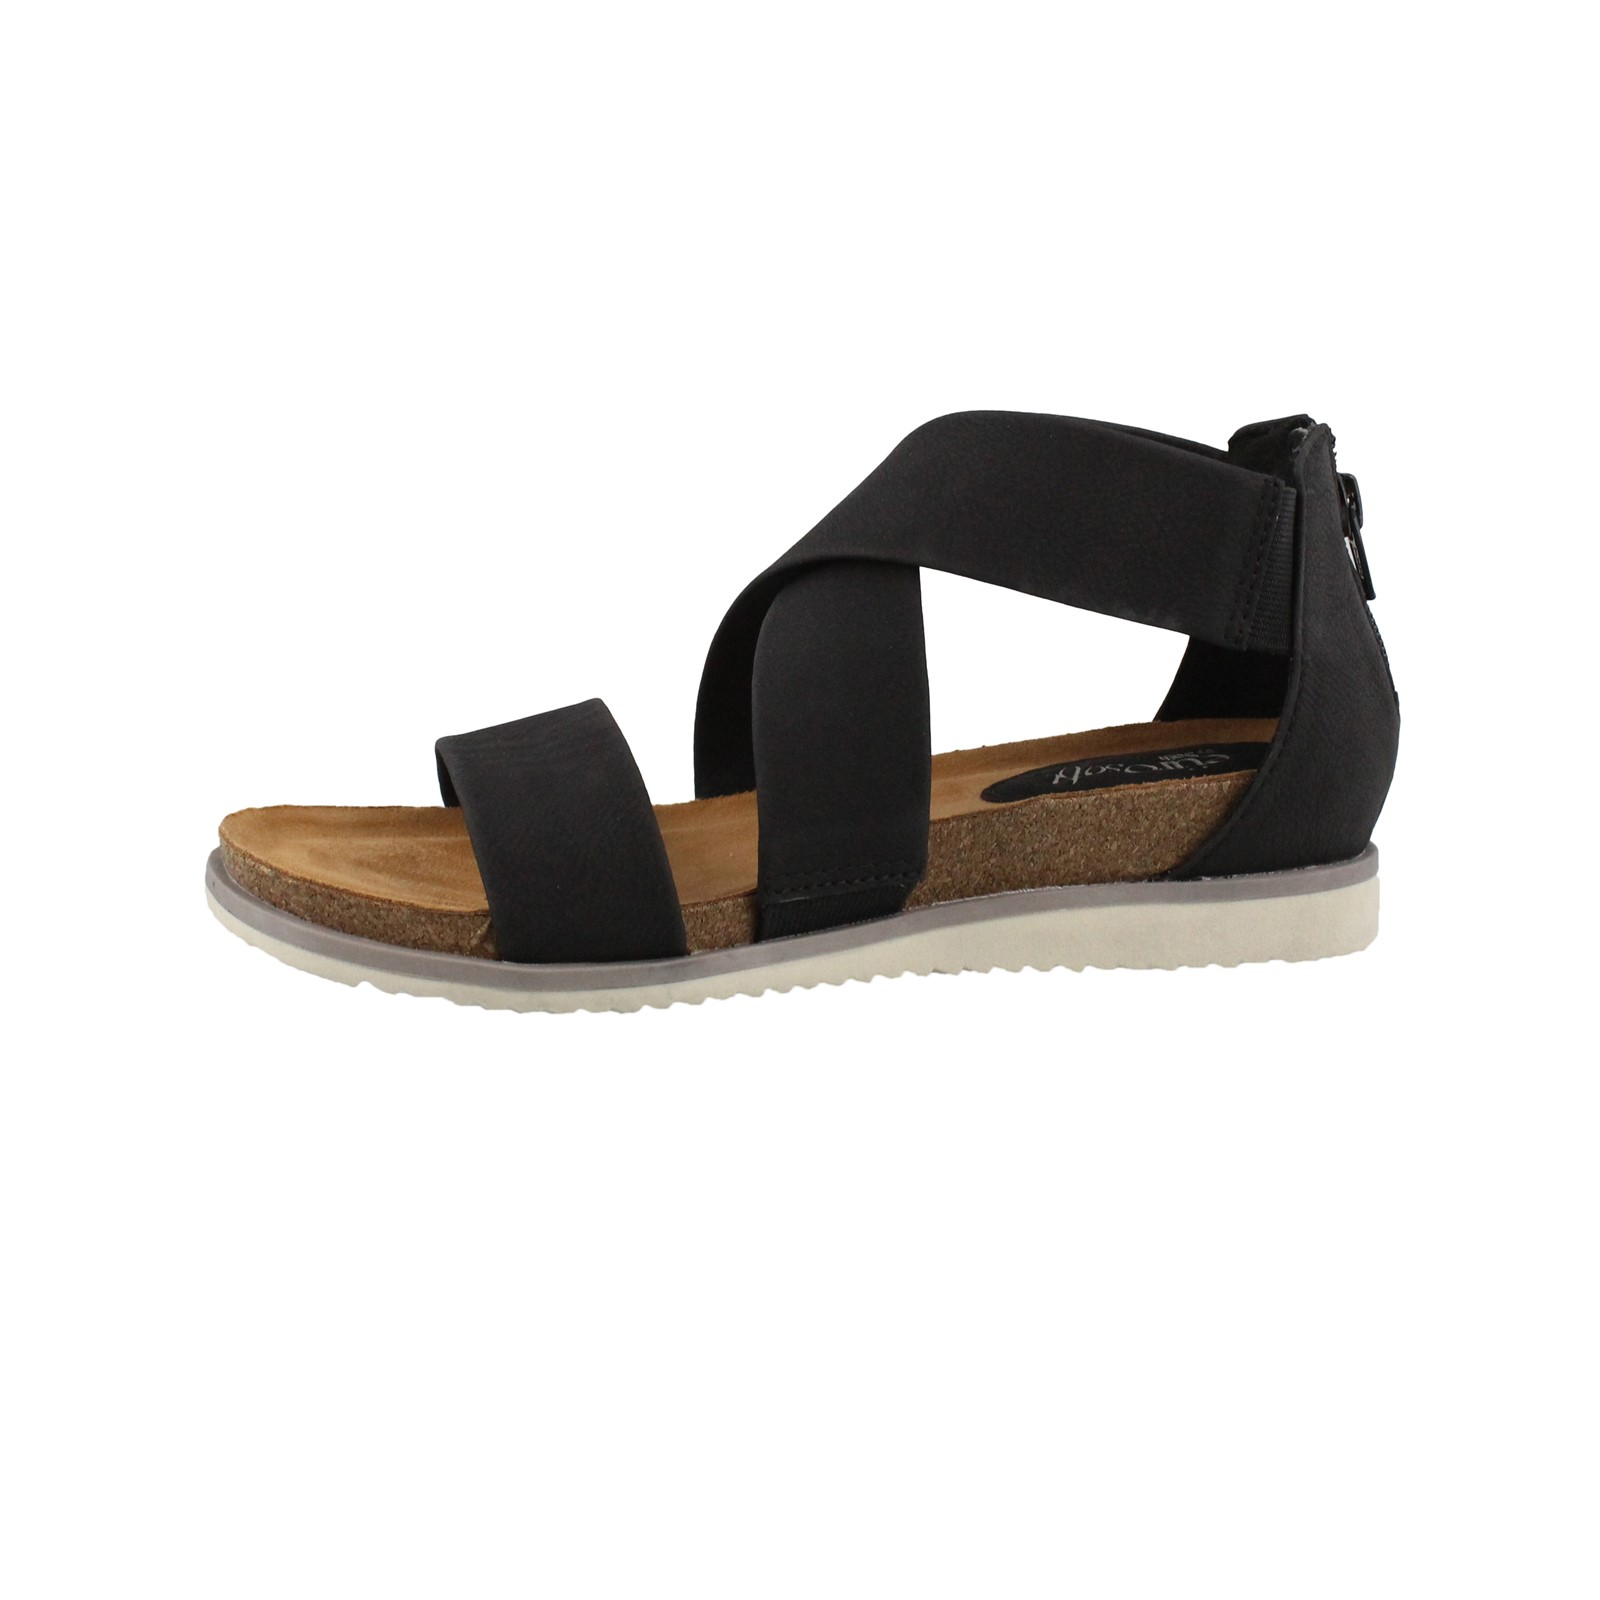 ea921d45908 Next. add to favorites. Women's Eurosoft by Sofft, Landry II casual Sandals